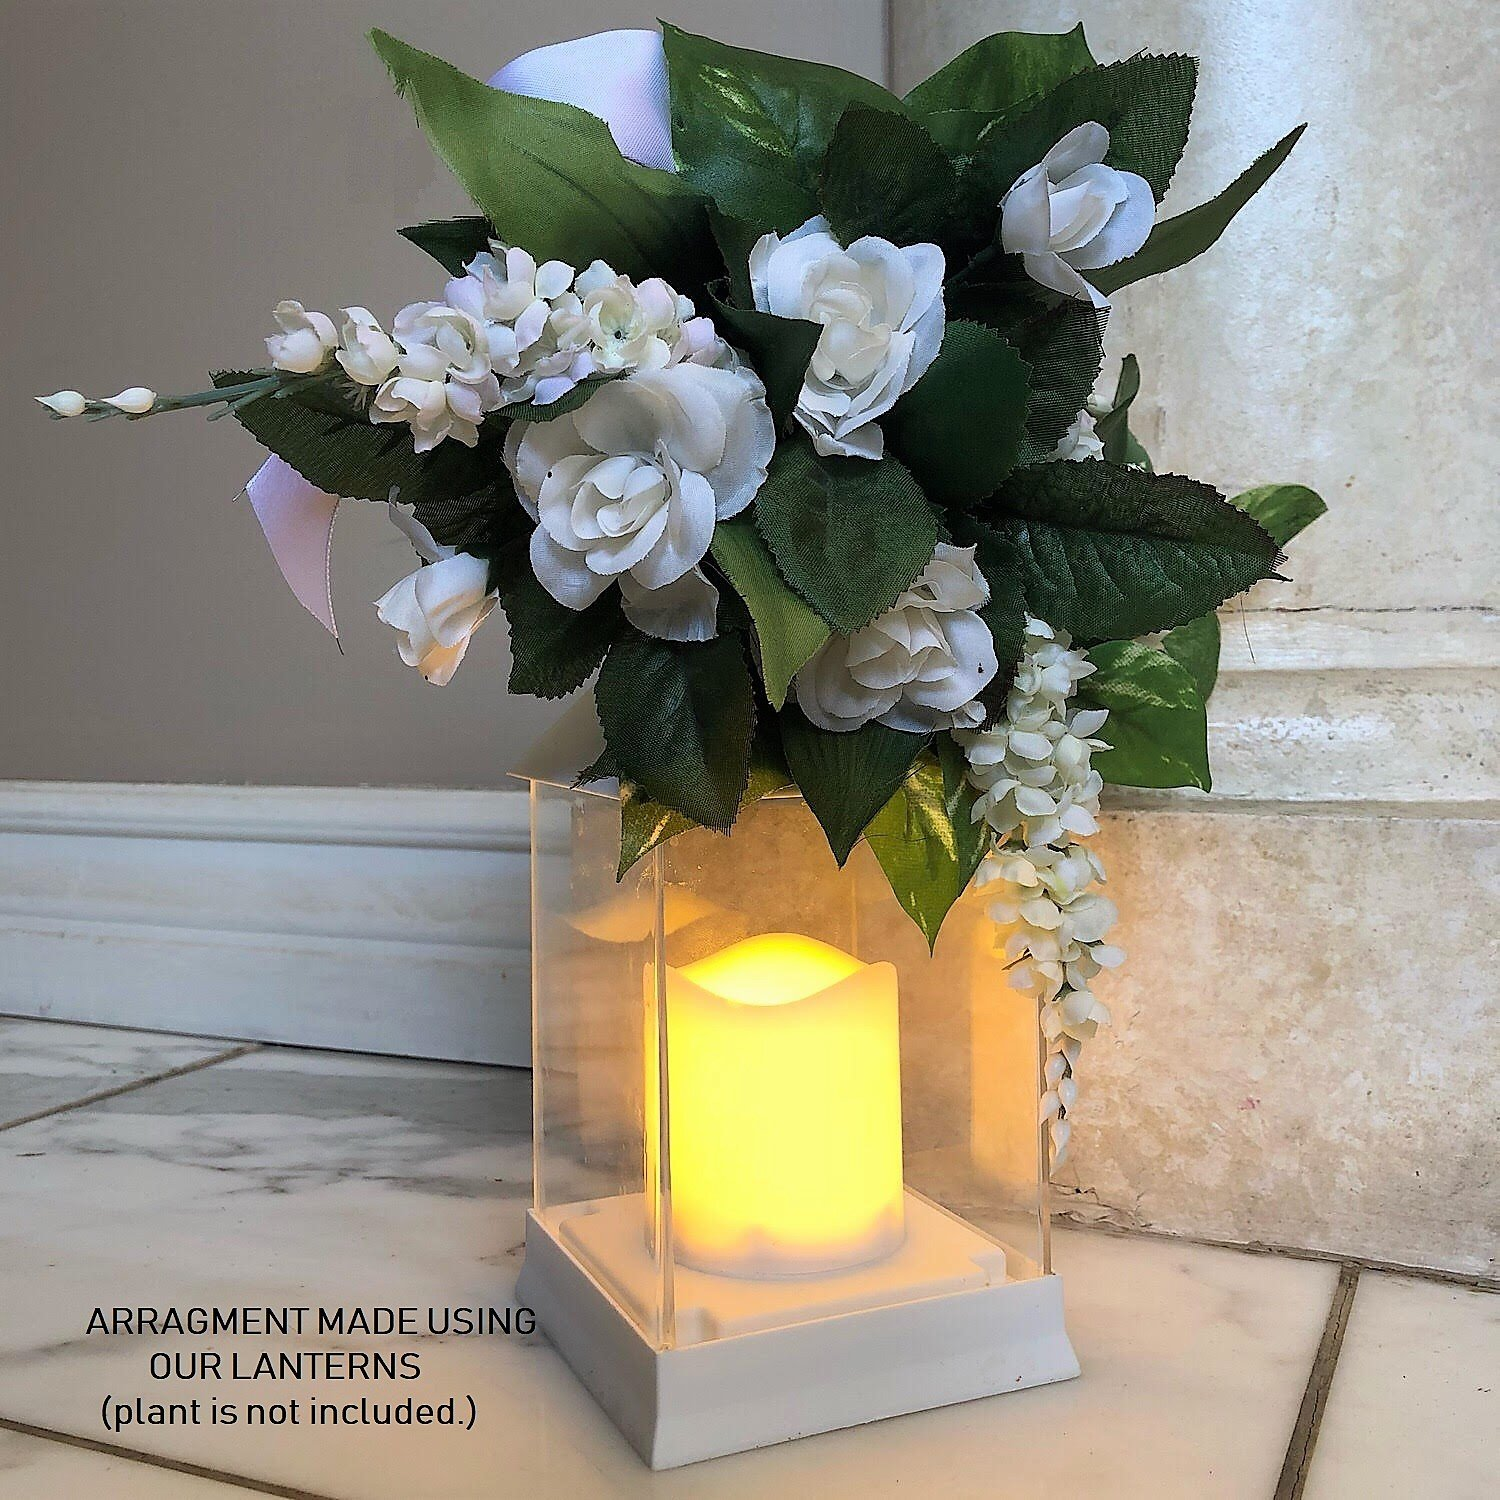 Just In Time for Spring {12 Pc SET} - 10'' Decorative Lanterns With Flameless LED Lighted Candle 5 Hr Timer Modern Look Indoor Outdoor Home, Garden, Weddings - Includes Bonus String Lights! White. by The Nifty Nook (Image #7)